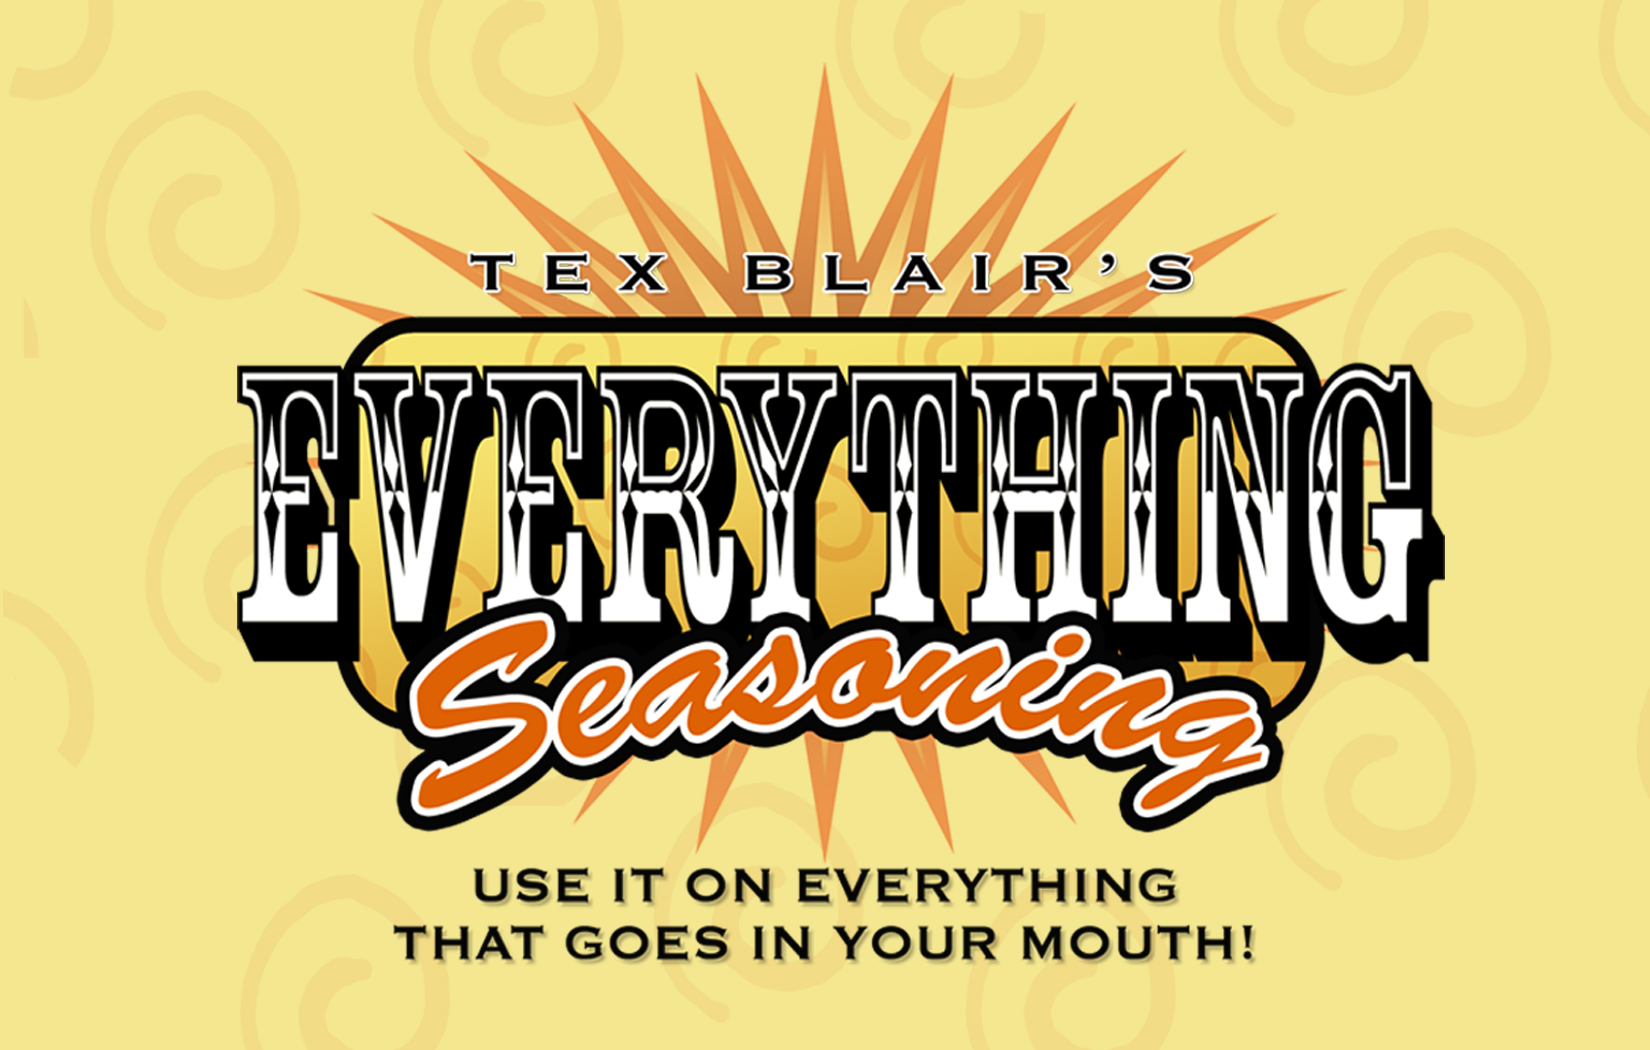 Recipes - Substitute TBES in your favorite recipes to add a smokey zing to your creation!Please contact us if you have any questions or suggestionsThanks,Tex